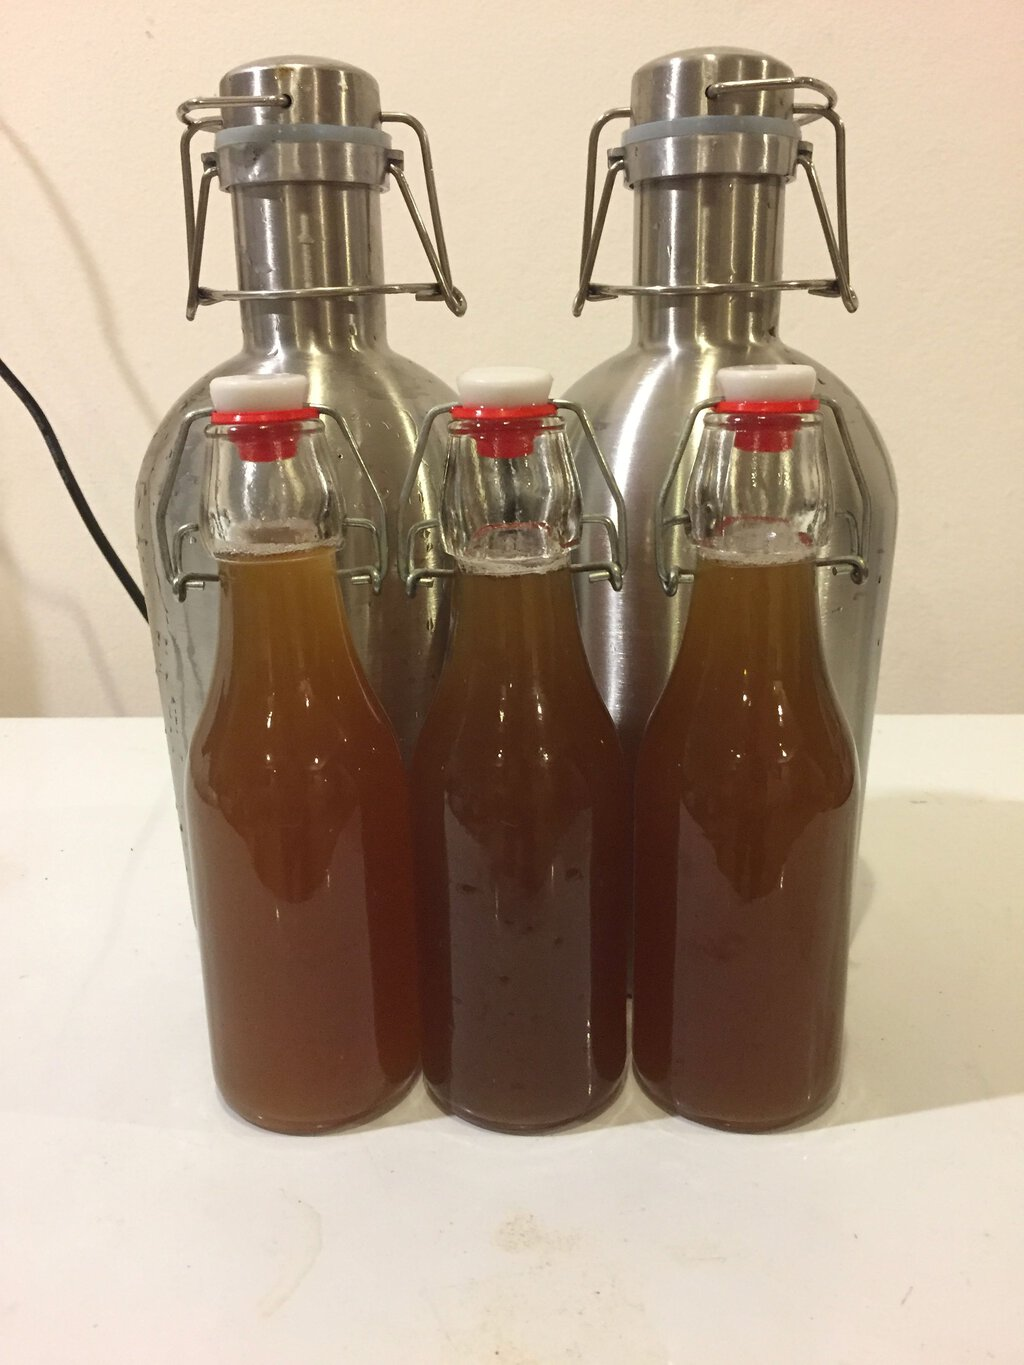 Bottled Kvass